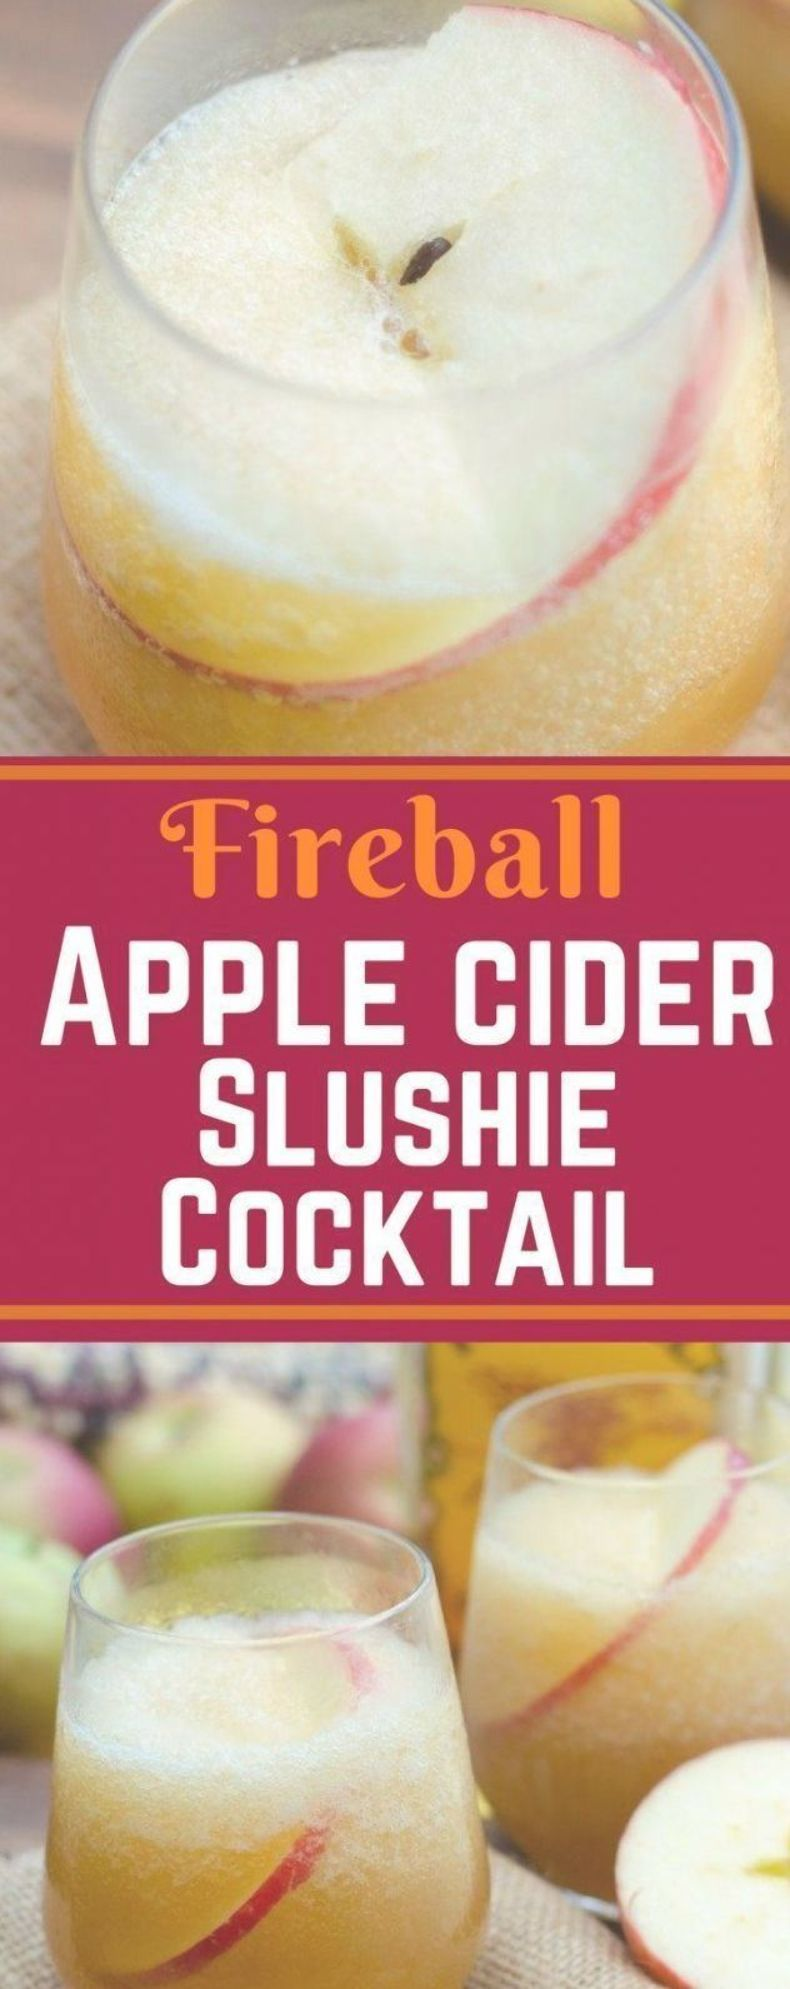 This Fireball Apple Cider Slushie Cocktail Is One Of The Best Drinks For The Holidays And Fall Fire In Ice Use Slushies Lustige Getranke Thanksgiving Getranke